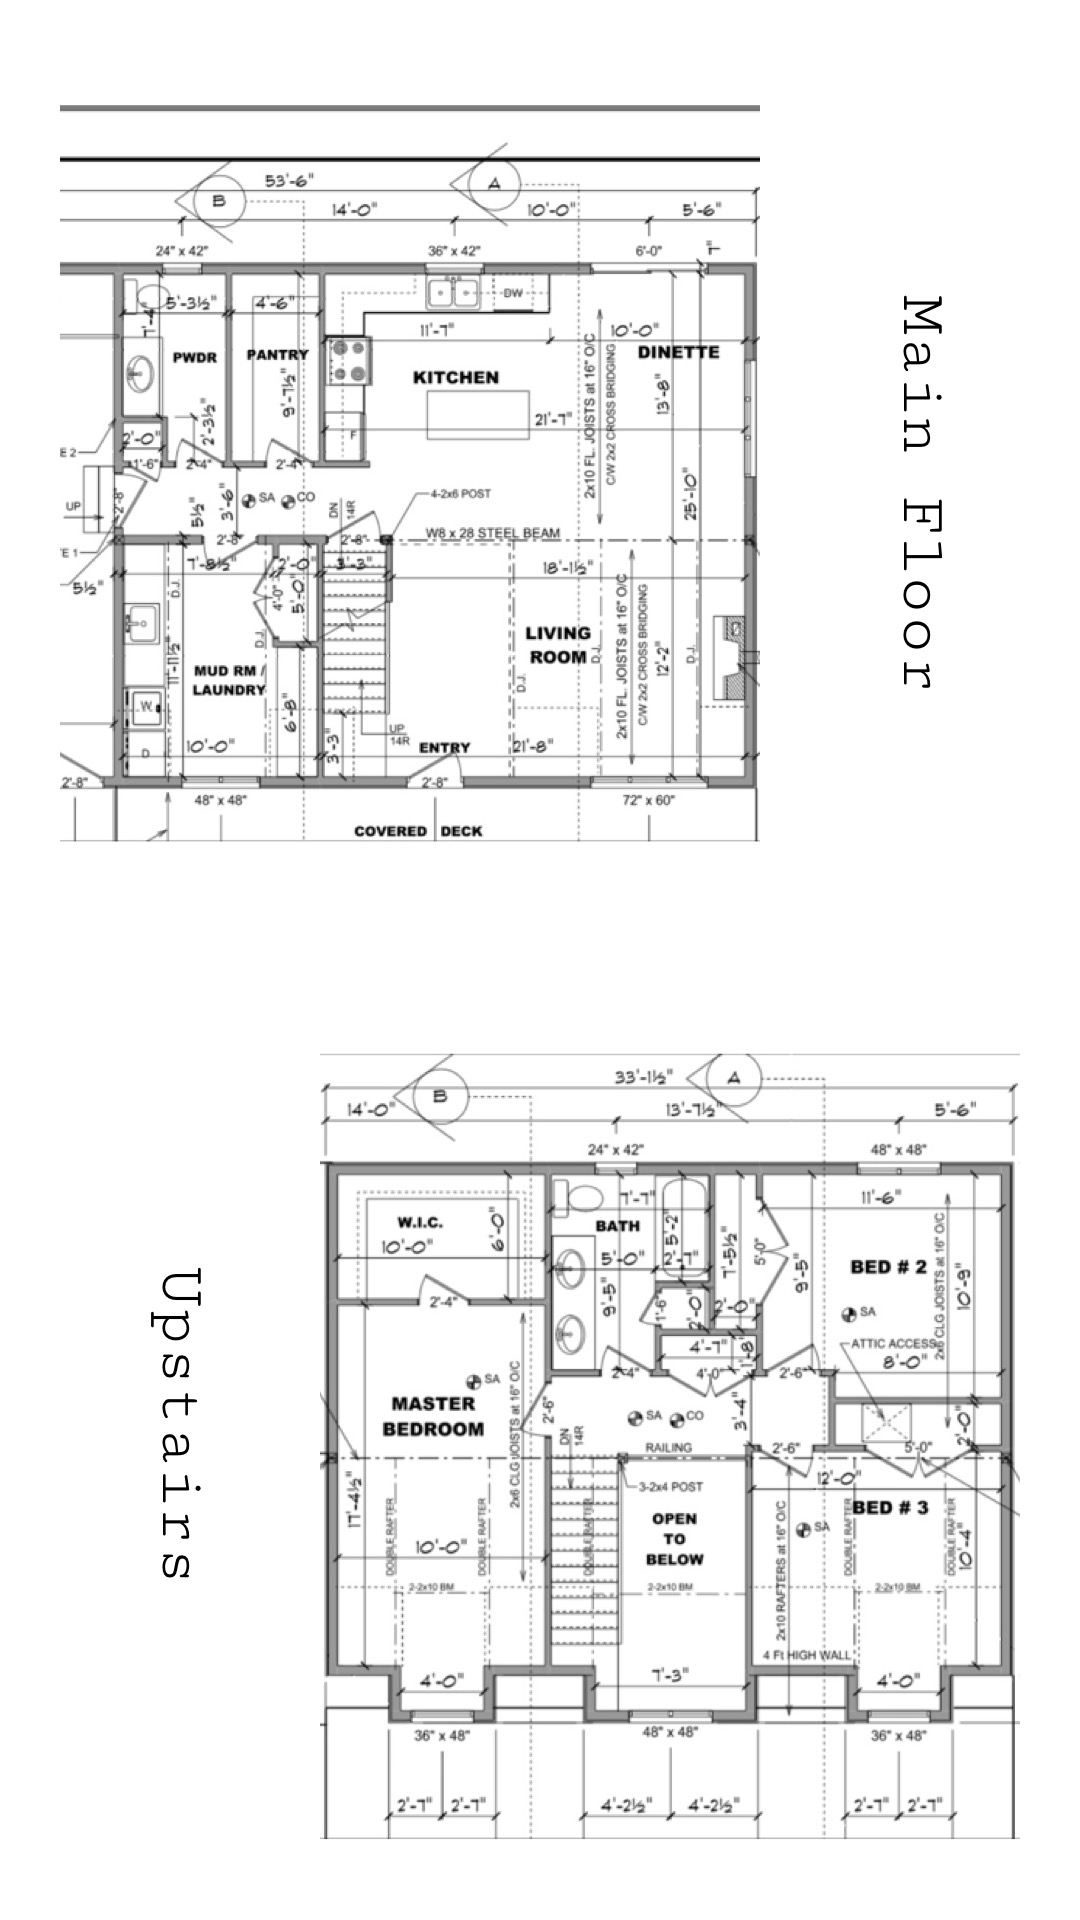 Our Home Build General Design And Layout